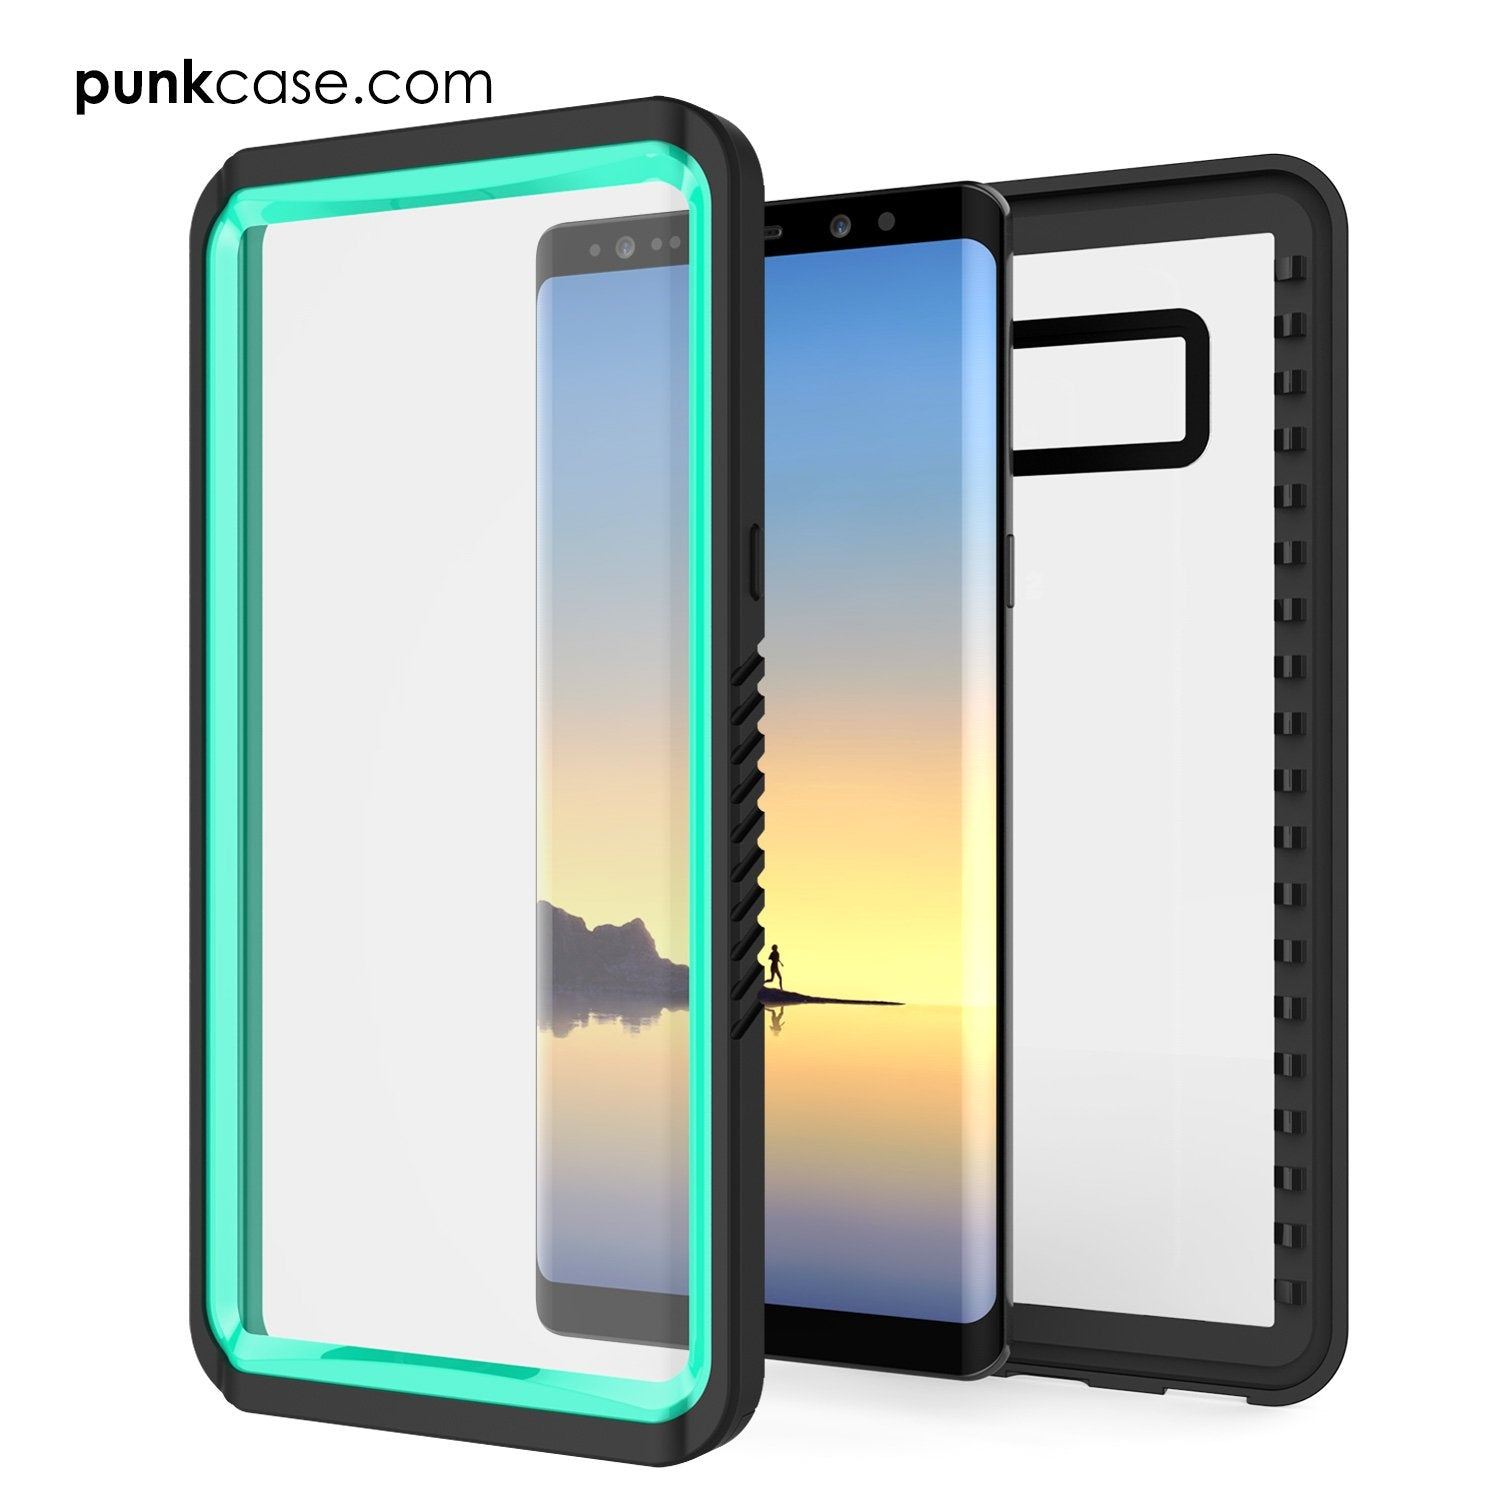 Galaxy Note 8 Case, Punkcase [Extreme Series] [Slim Fit] [IP68 Certified] [Shockproof] Armor Cover W/ Built In Screen Protector [Teal]